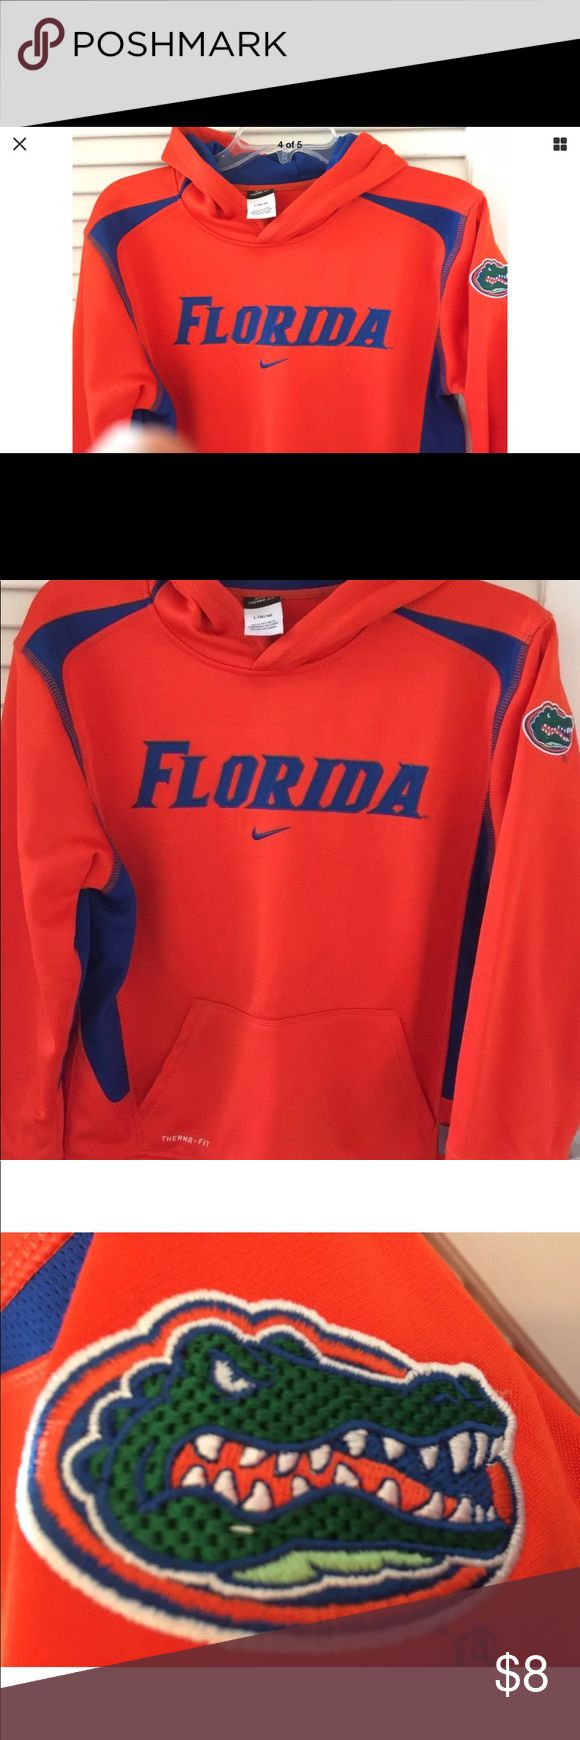 Gators Sweatshirt Ladies Small/ Kids XL Goooo Gators!! Florida sweatshirt Ladies Small/ Kids XL in really good pre owned. Condition. Priced to sell quick.. great fitting - great looking sweat shirt! Tops Sweatshirts & Hoodies